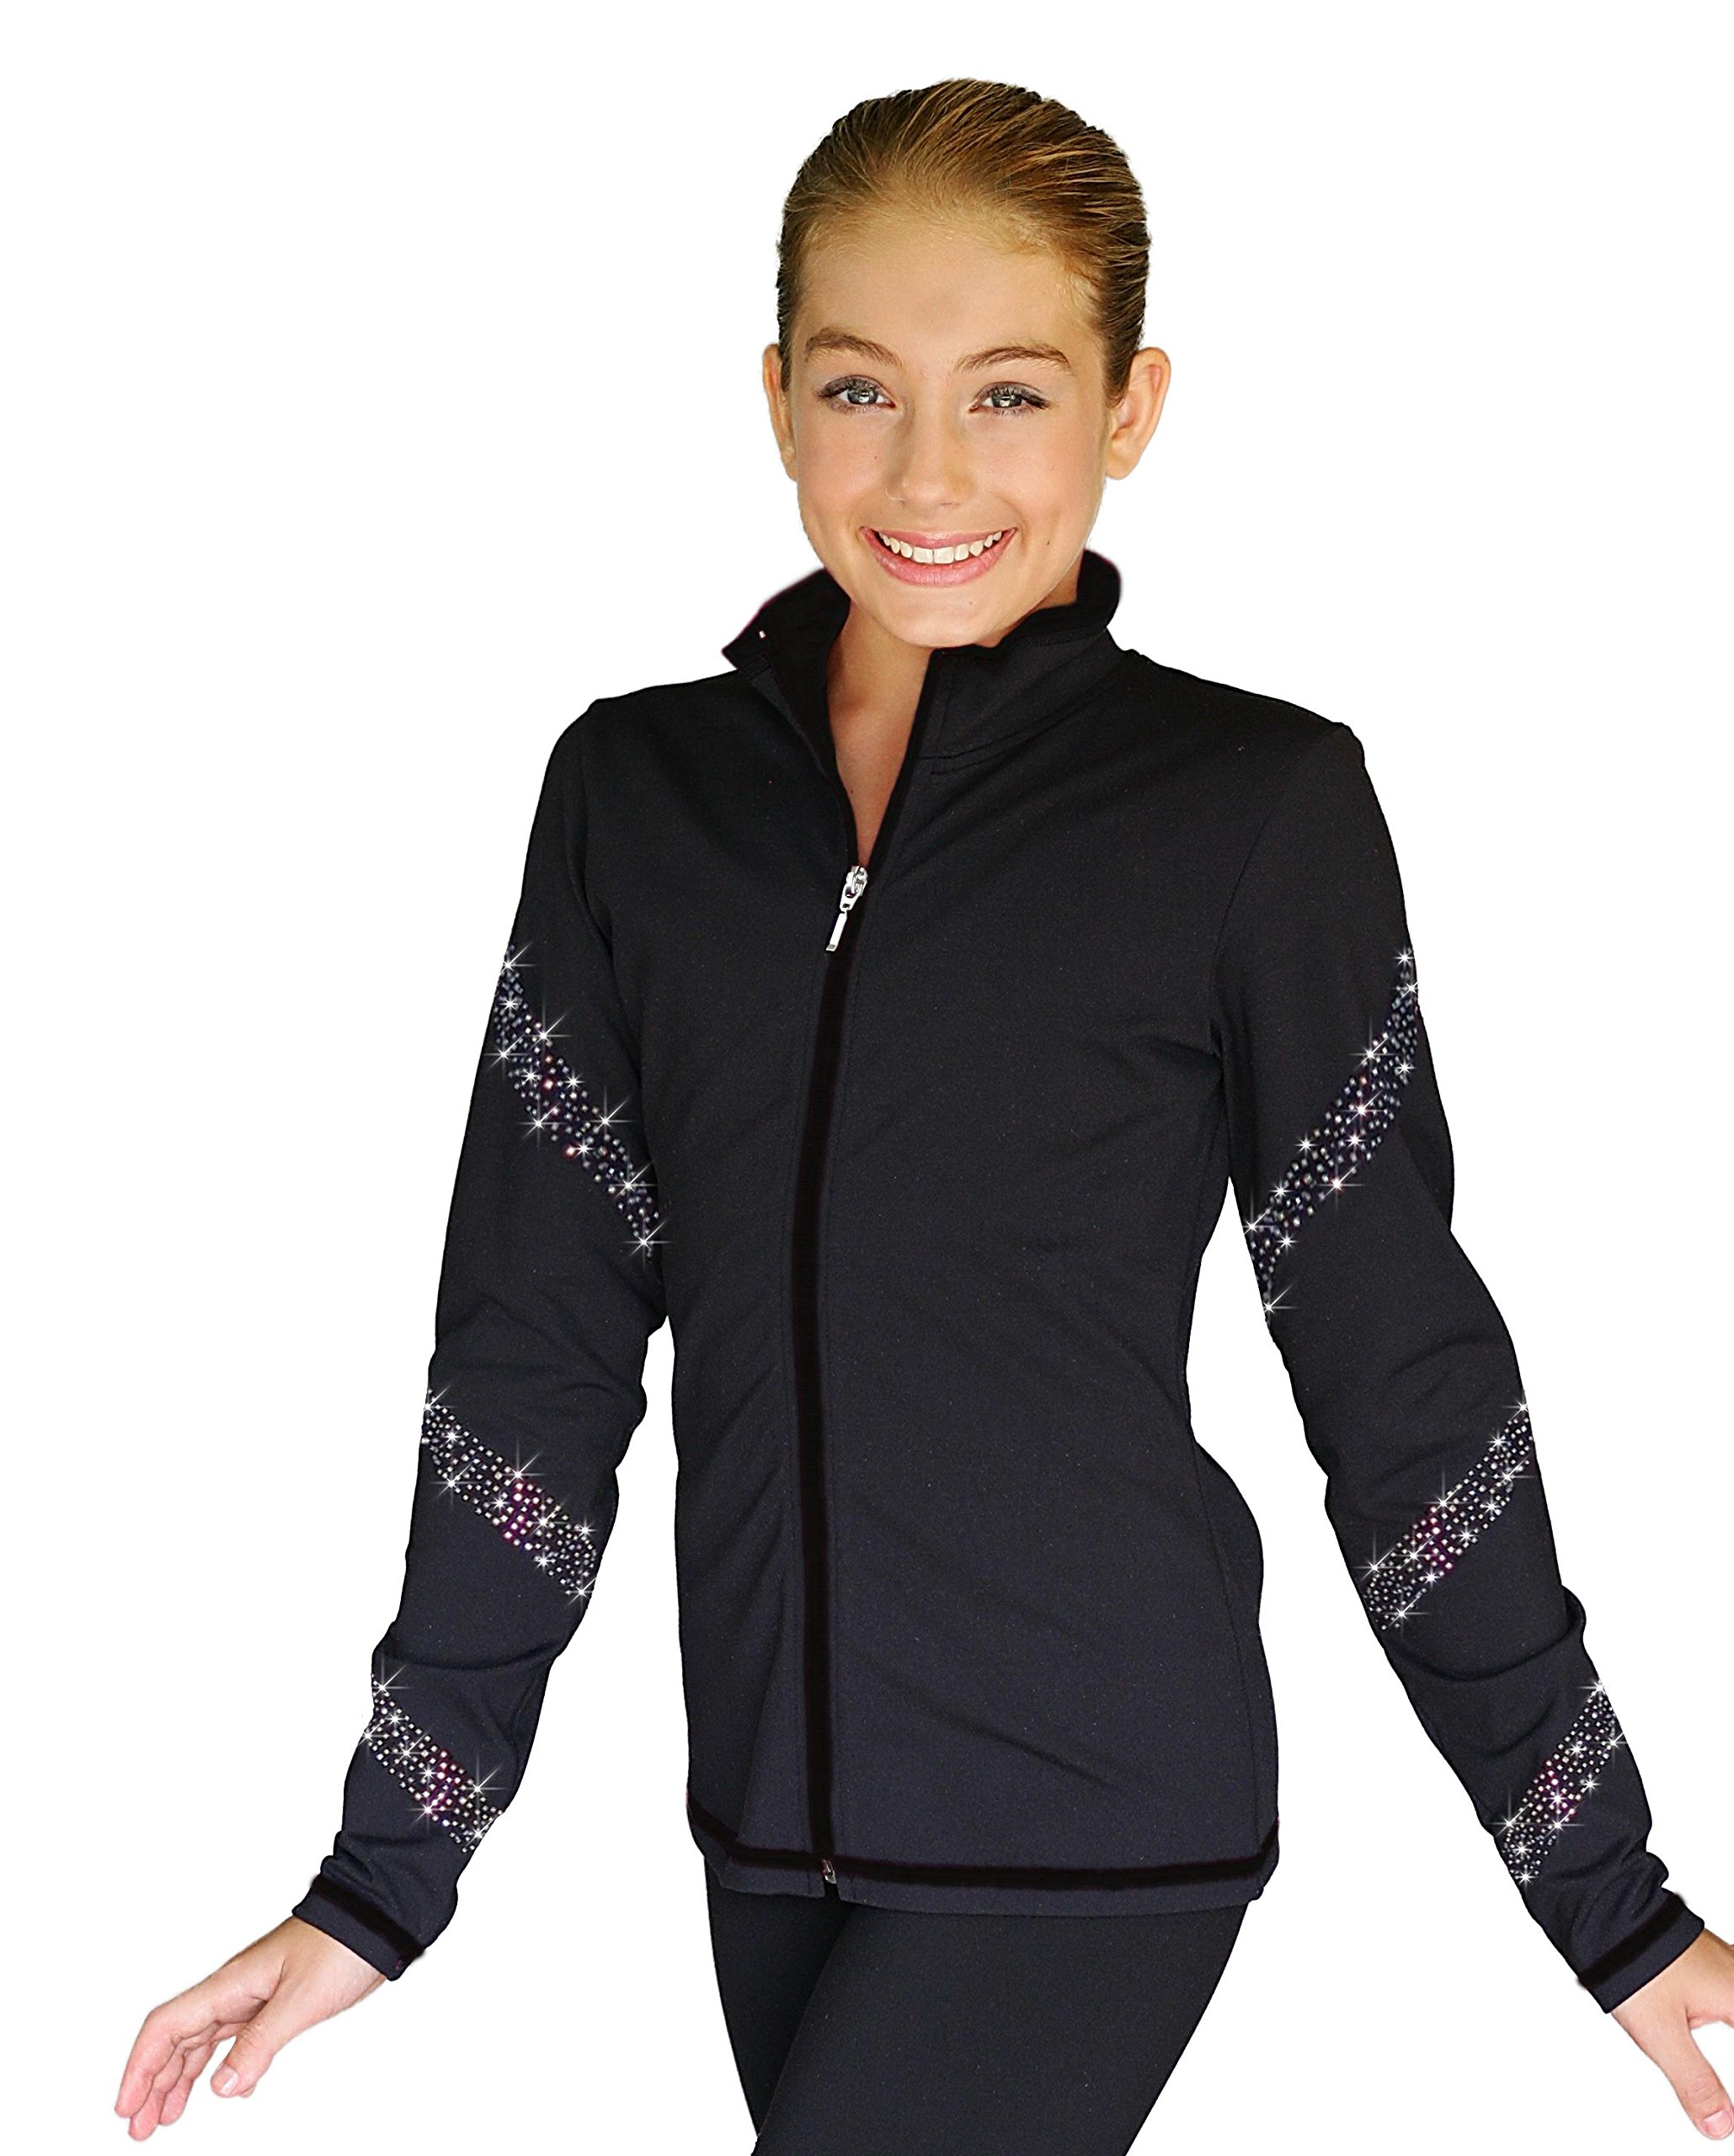 ChloeNoel JS96 Color Zipper Figure Skating Jacket with Crystals Spiral (Black/AB Crystals, Child Medium) by ChloeNoel